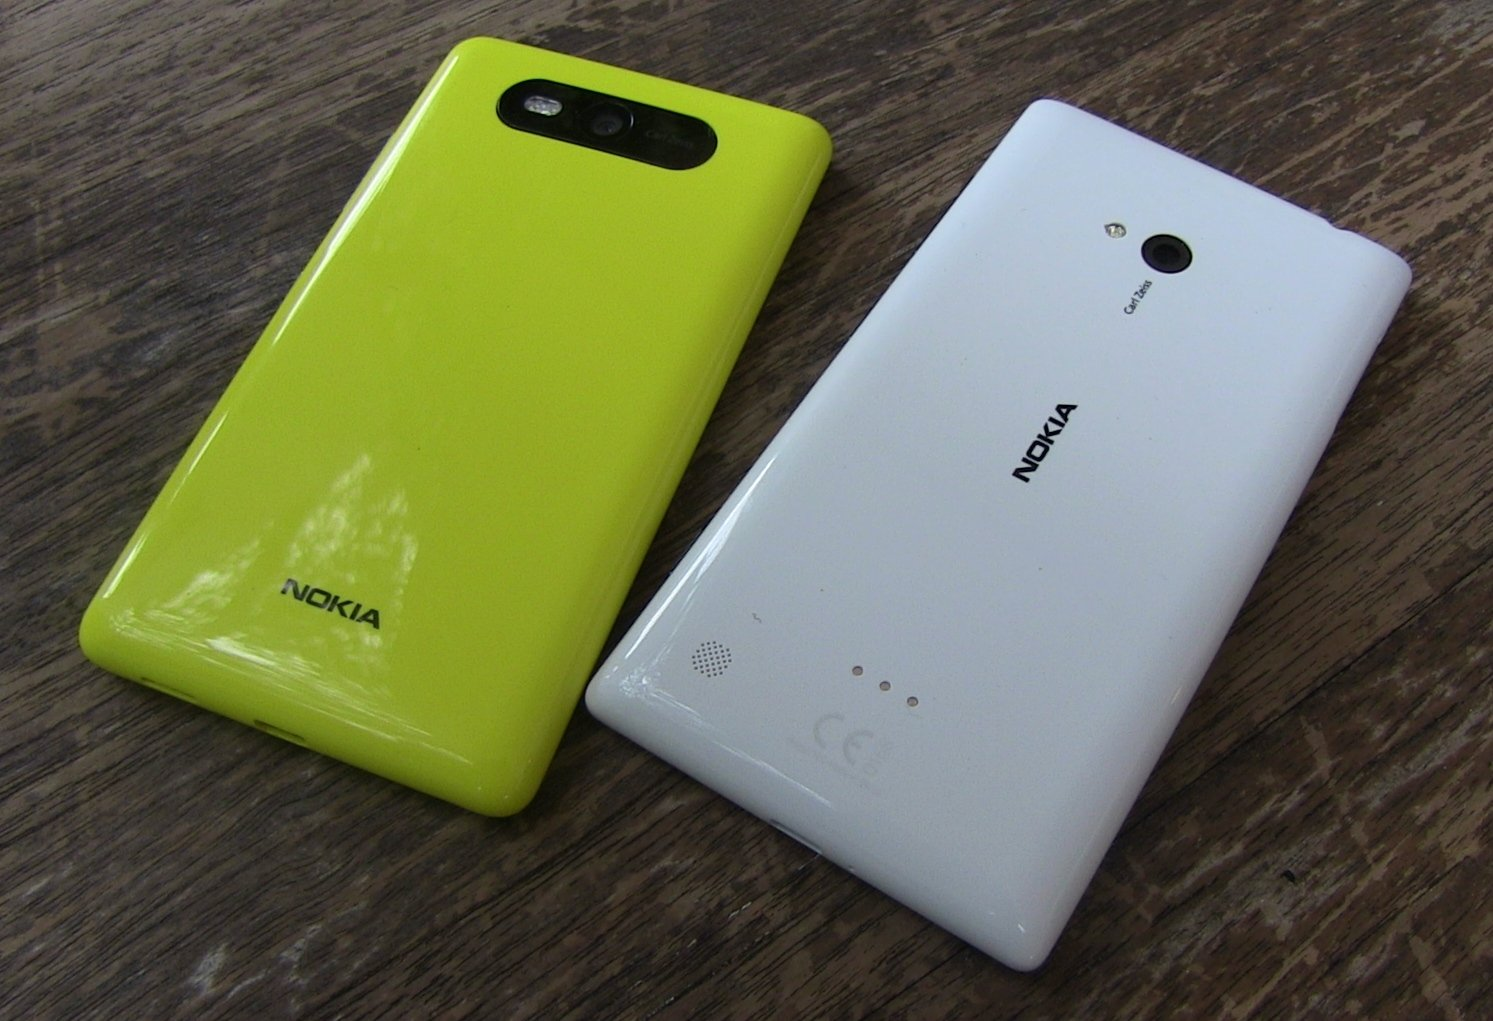 Nokia-Lumia-720-vs-820.jpg